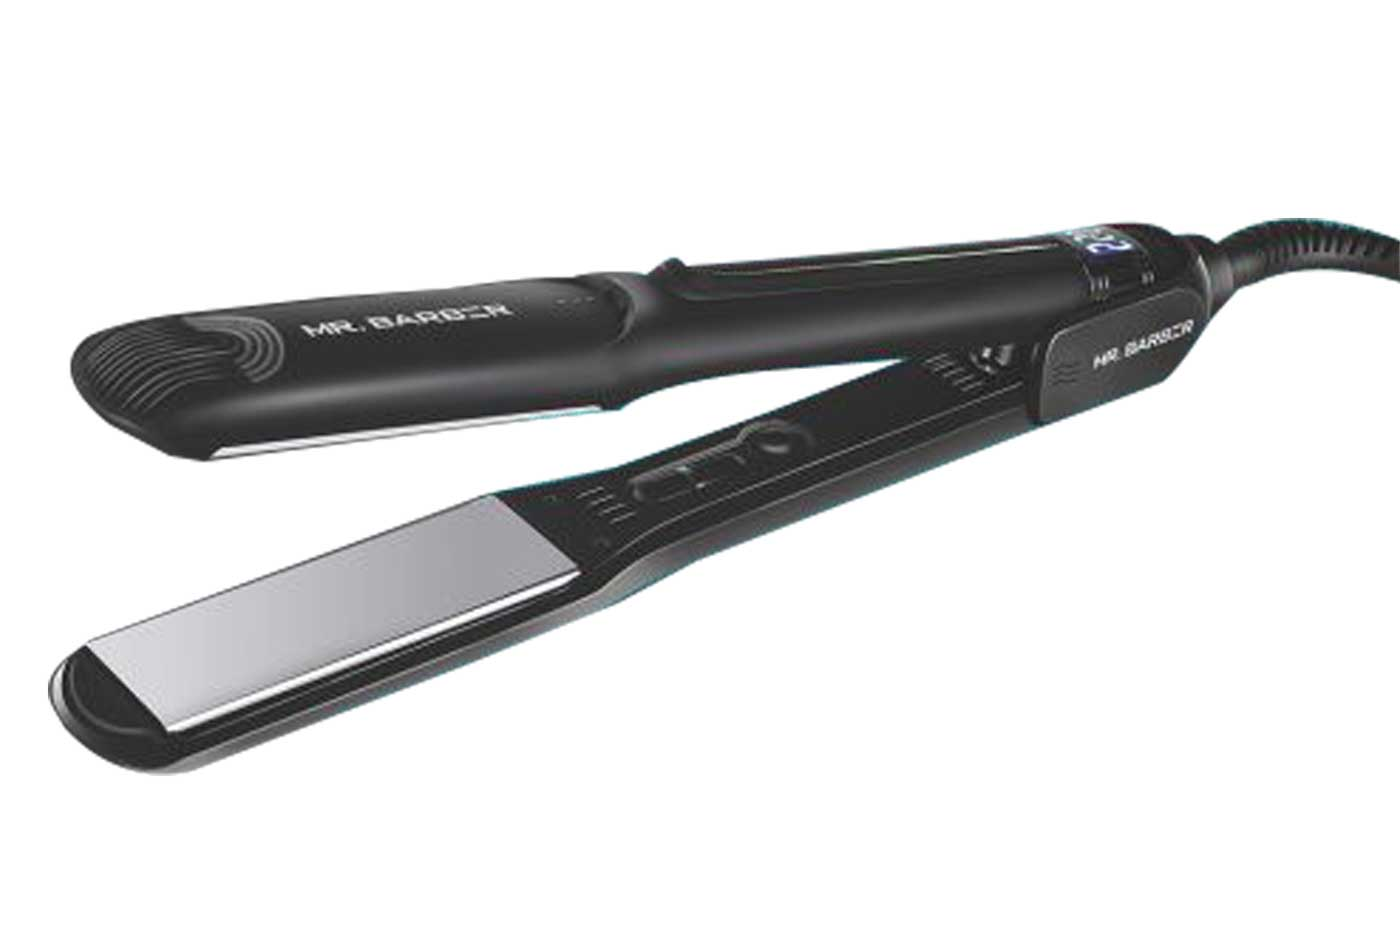 Mr. Barber's convenient and professional hairstyling tool